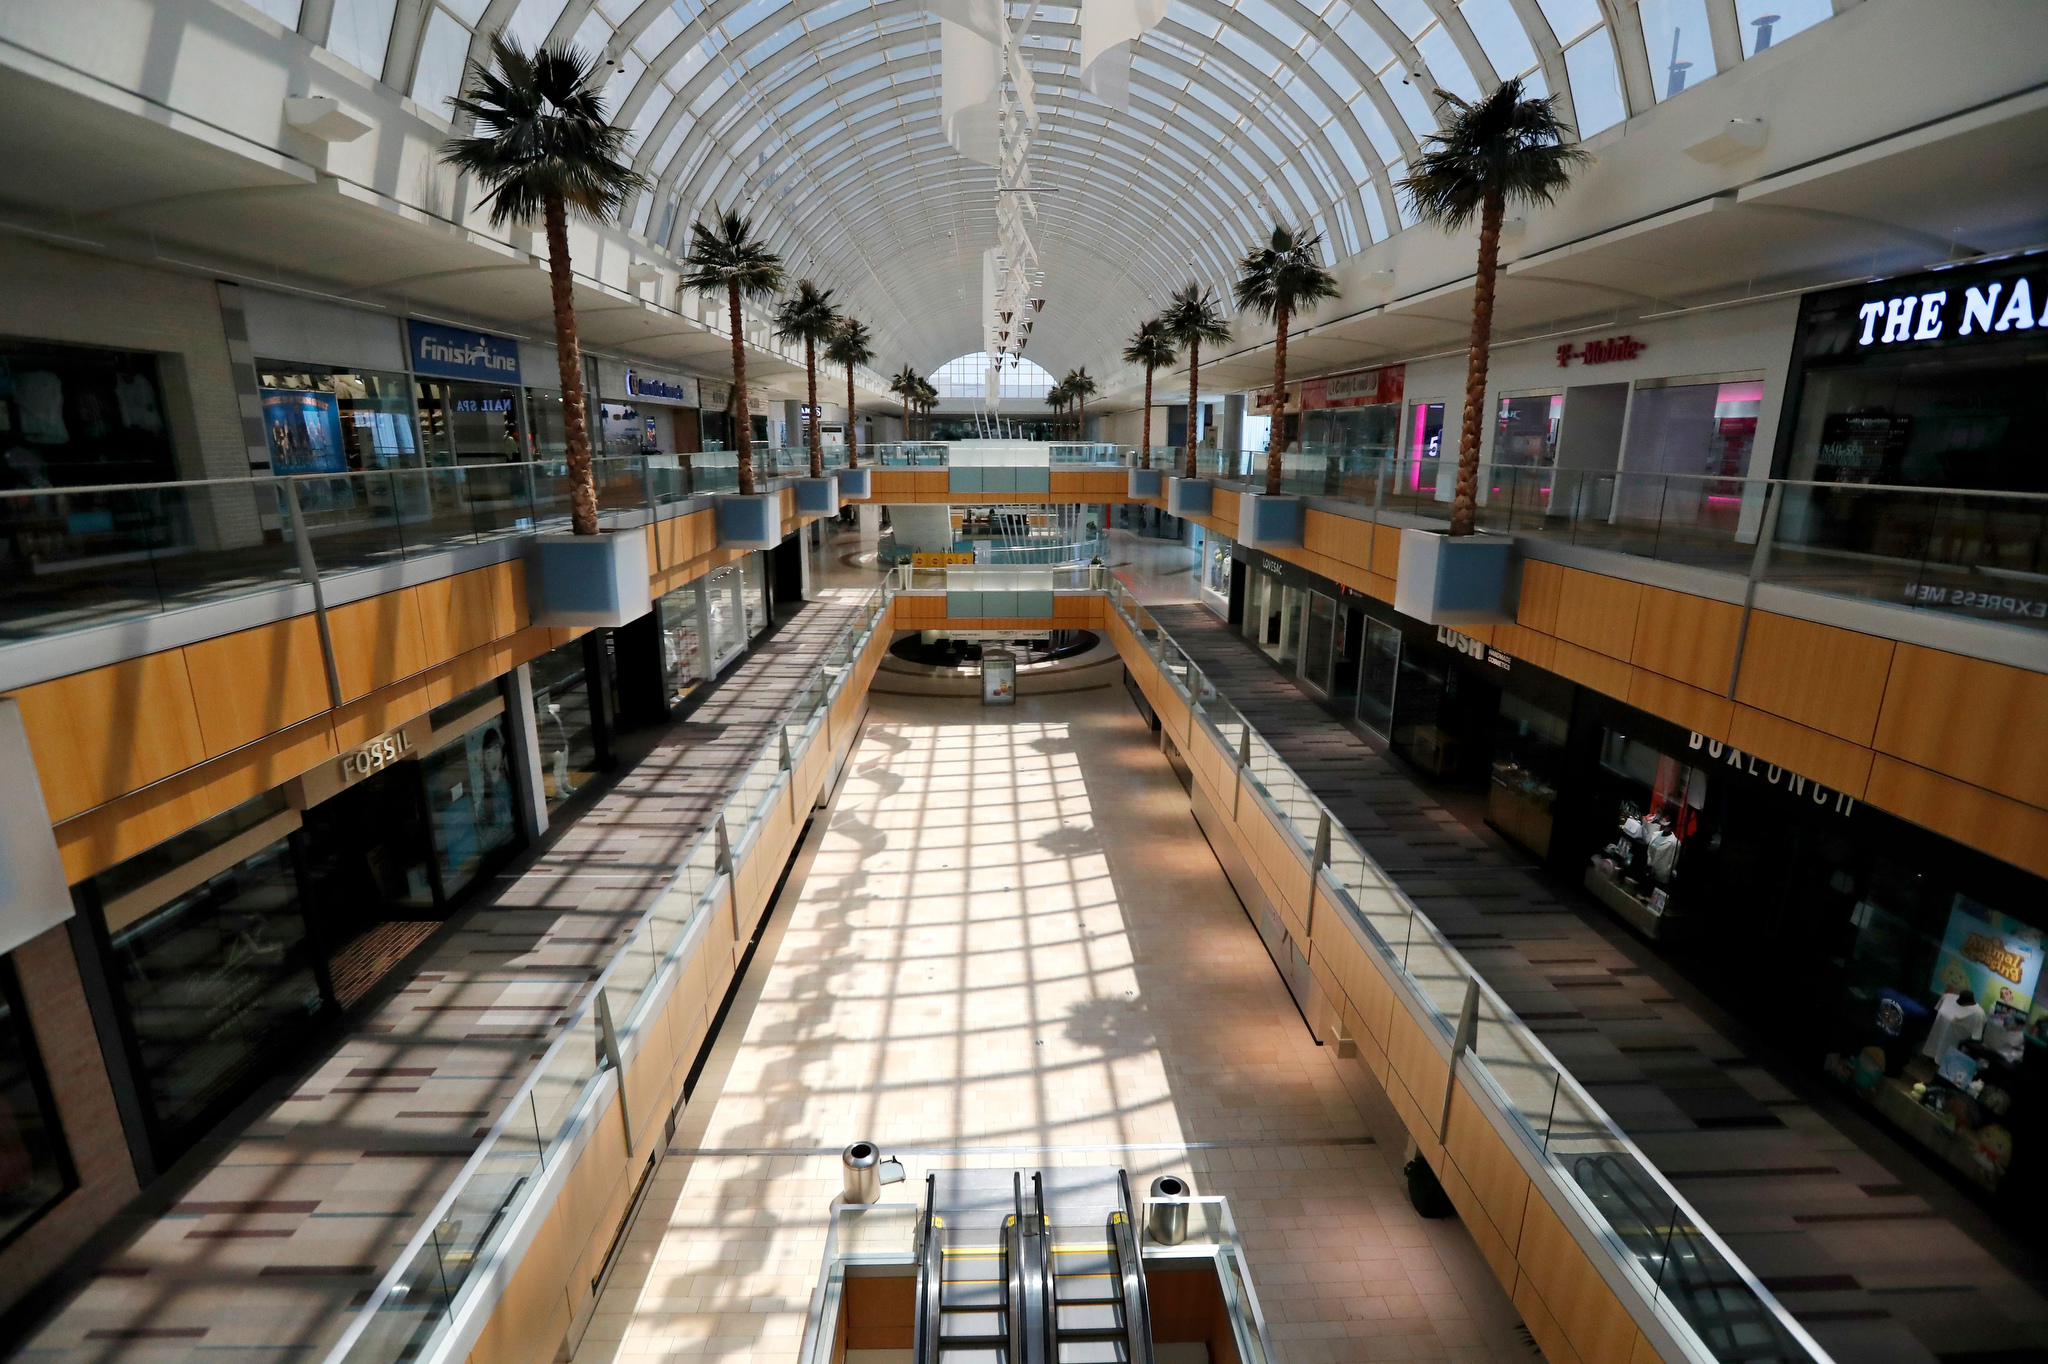 The Galleria sits void of customers in the middle of the day in Dallas, Texas.